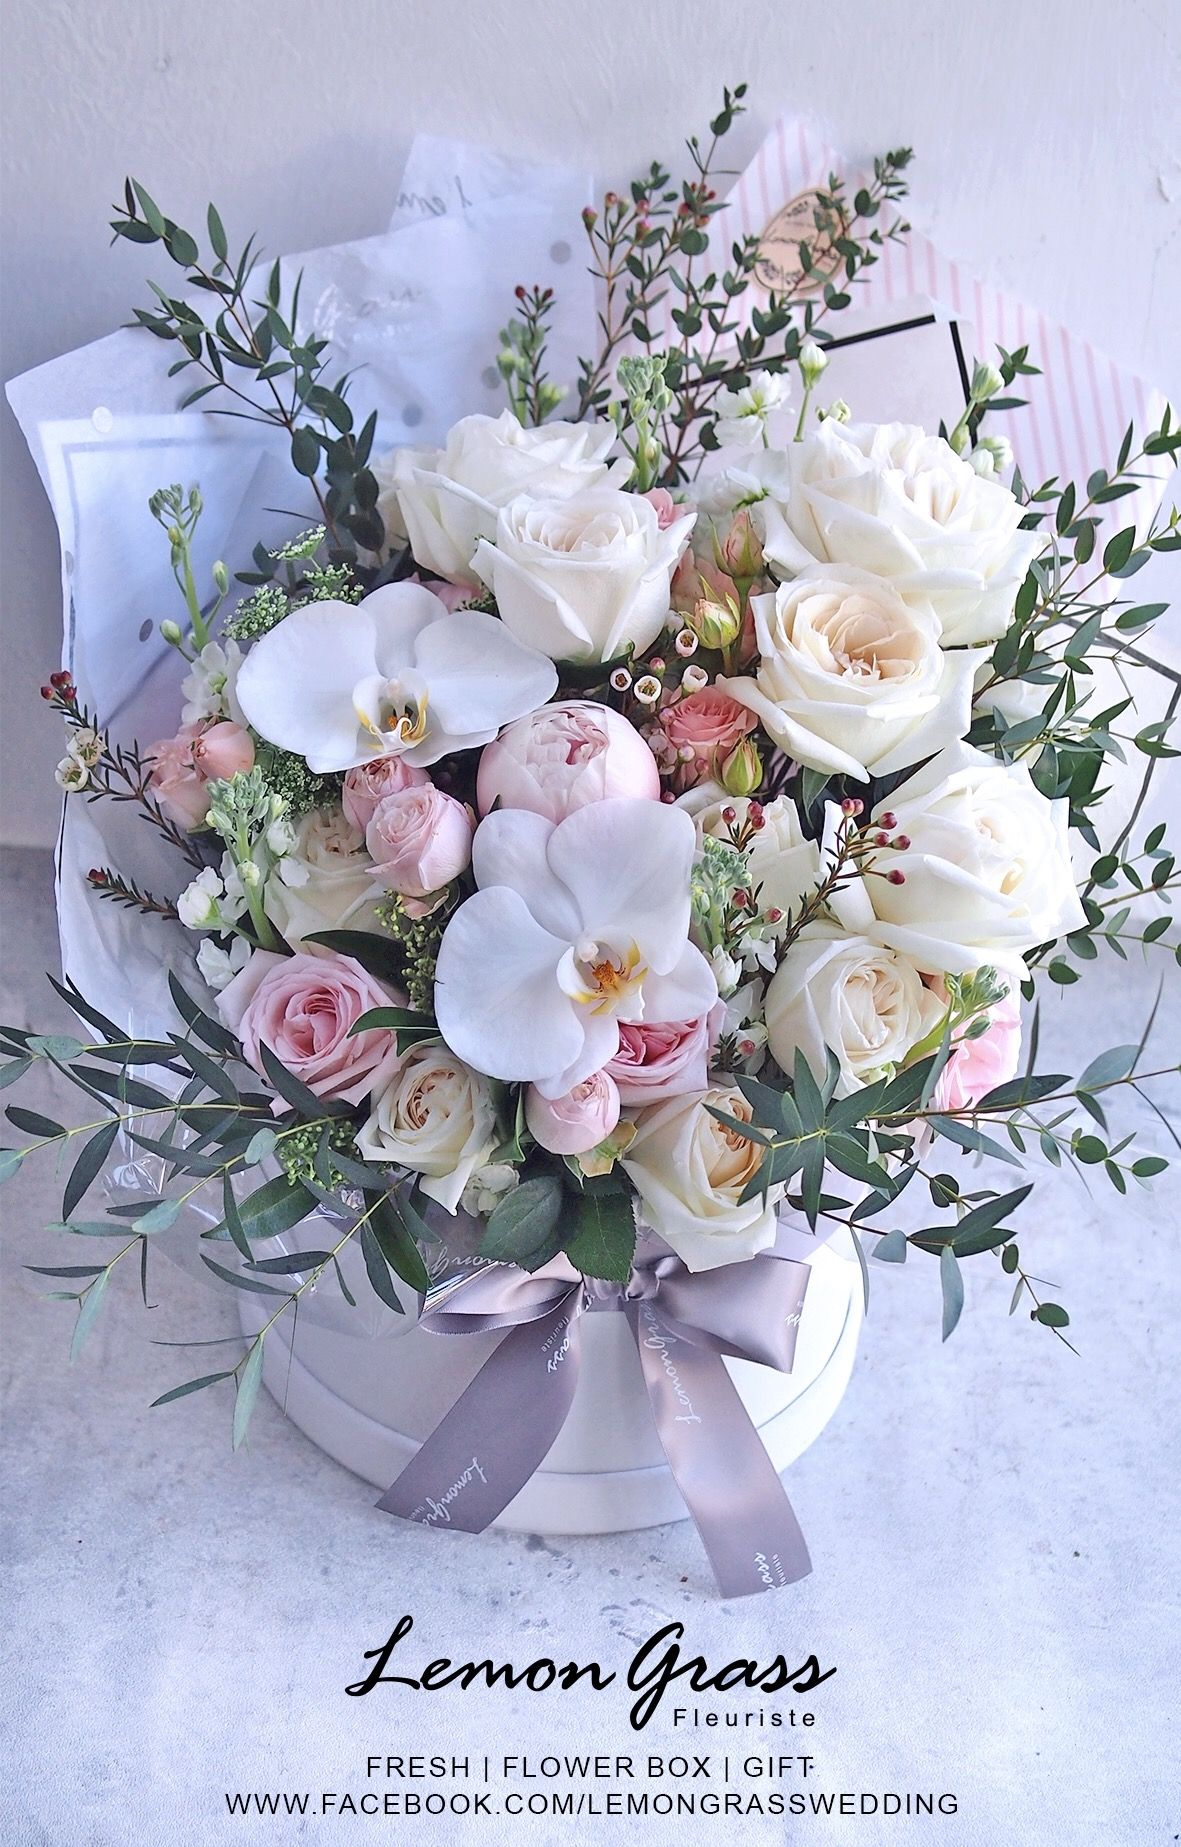 Pin by LemongrassWedding on Gifts of flowers | Pinterest | Flowers ...